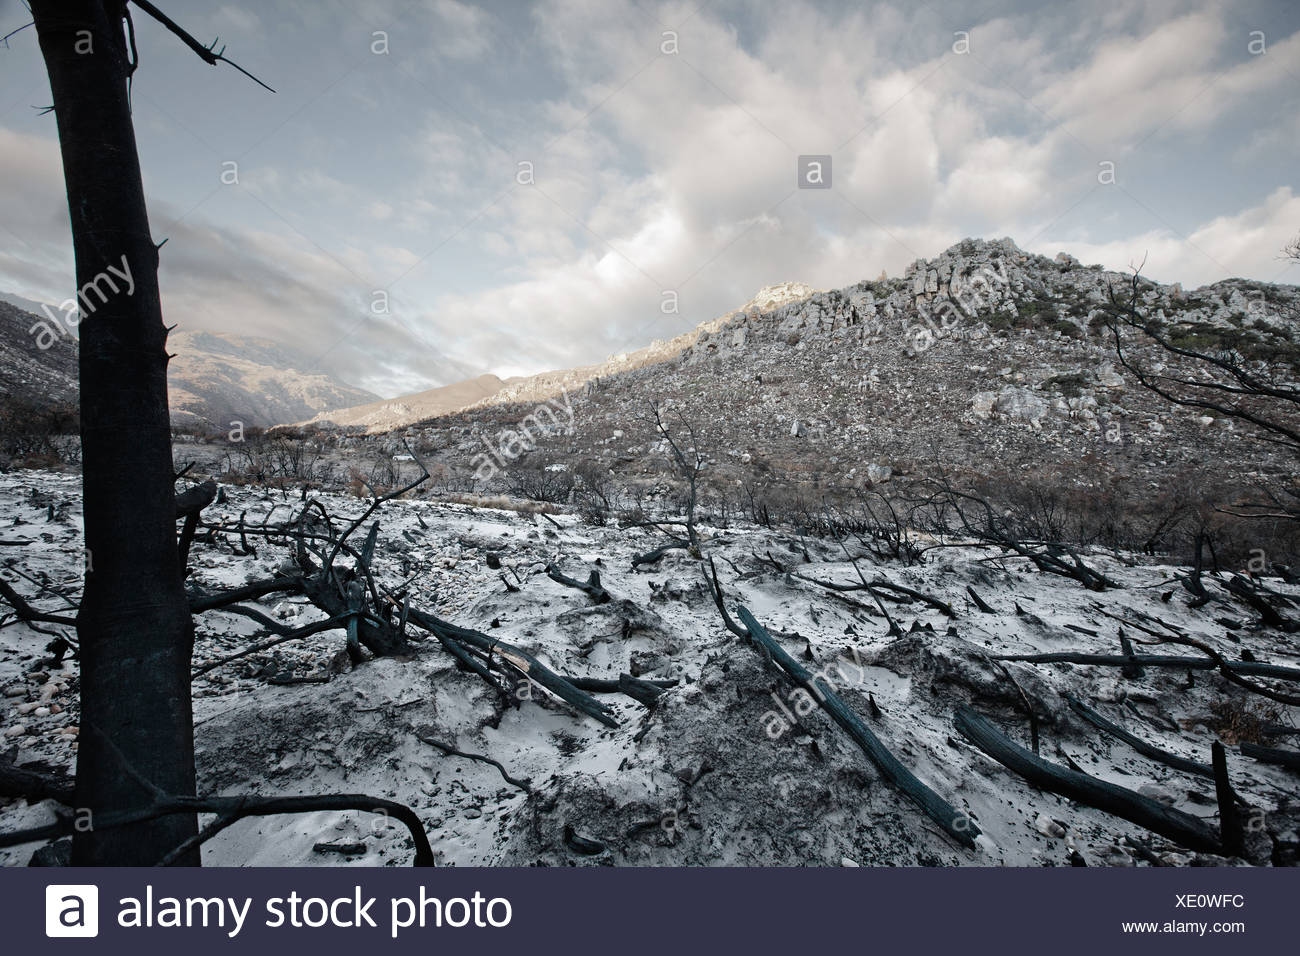 Bare trees and rocks in snowy field - Stock Image